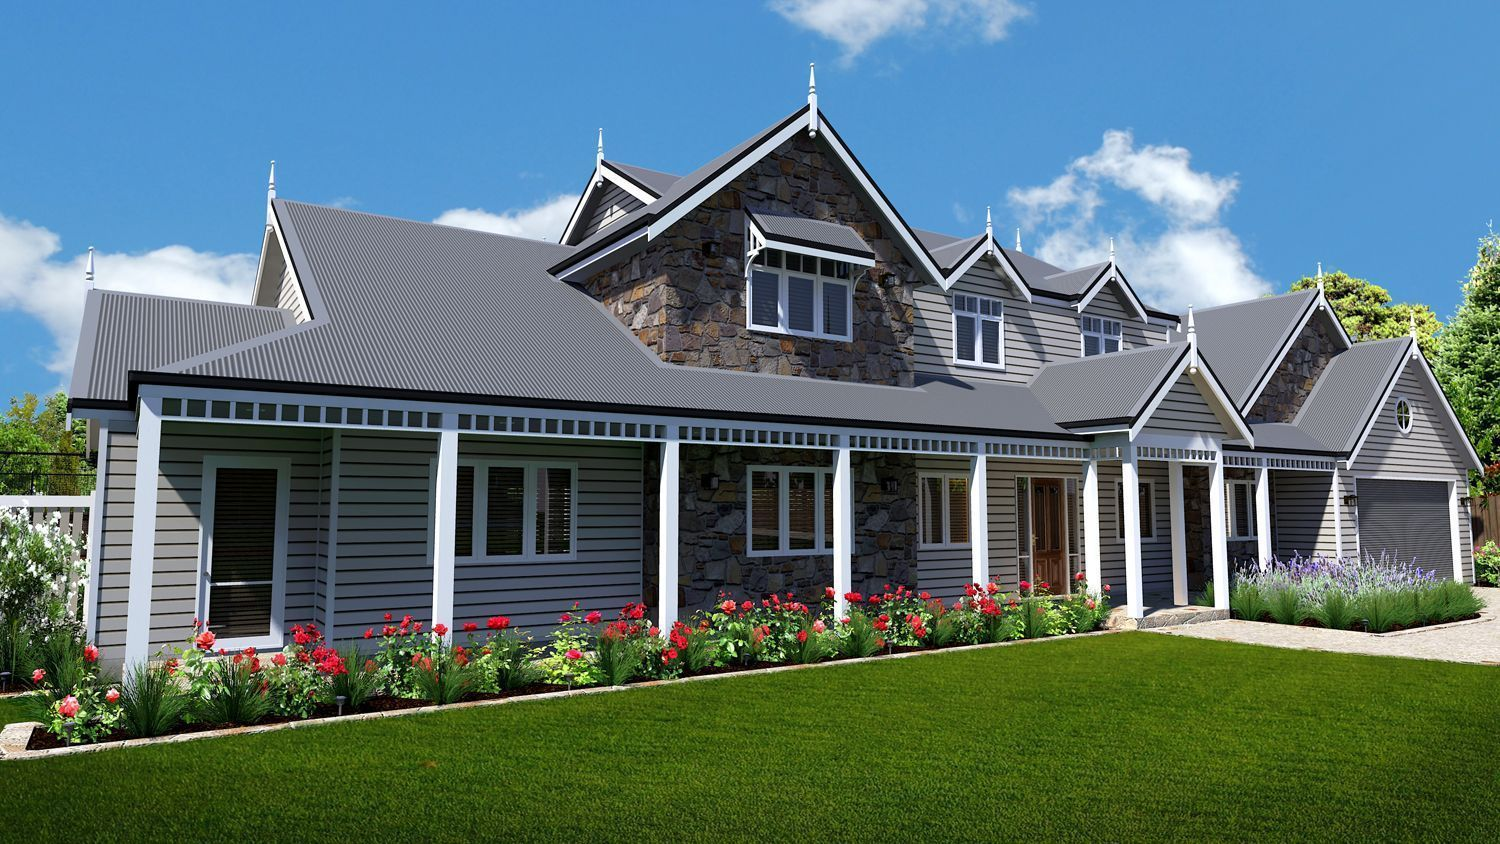 Ascot Manor Dream house plans, House styles, Building a